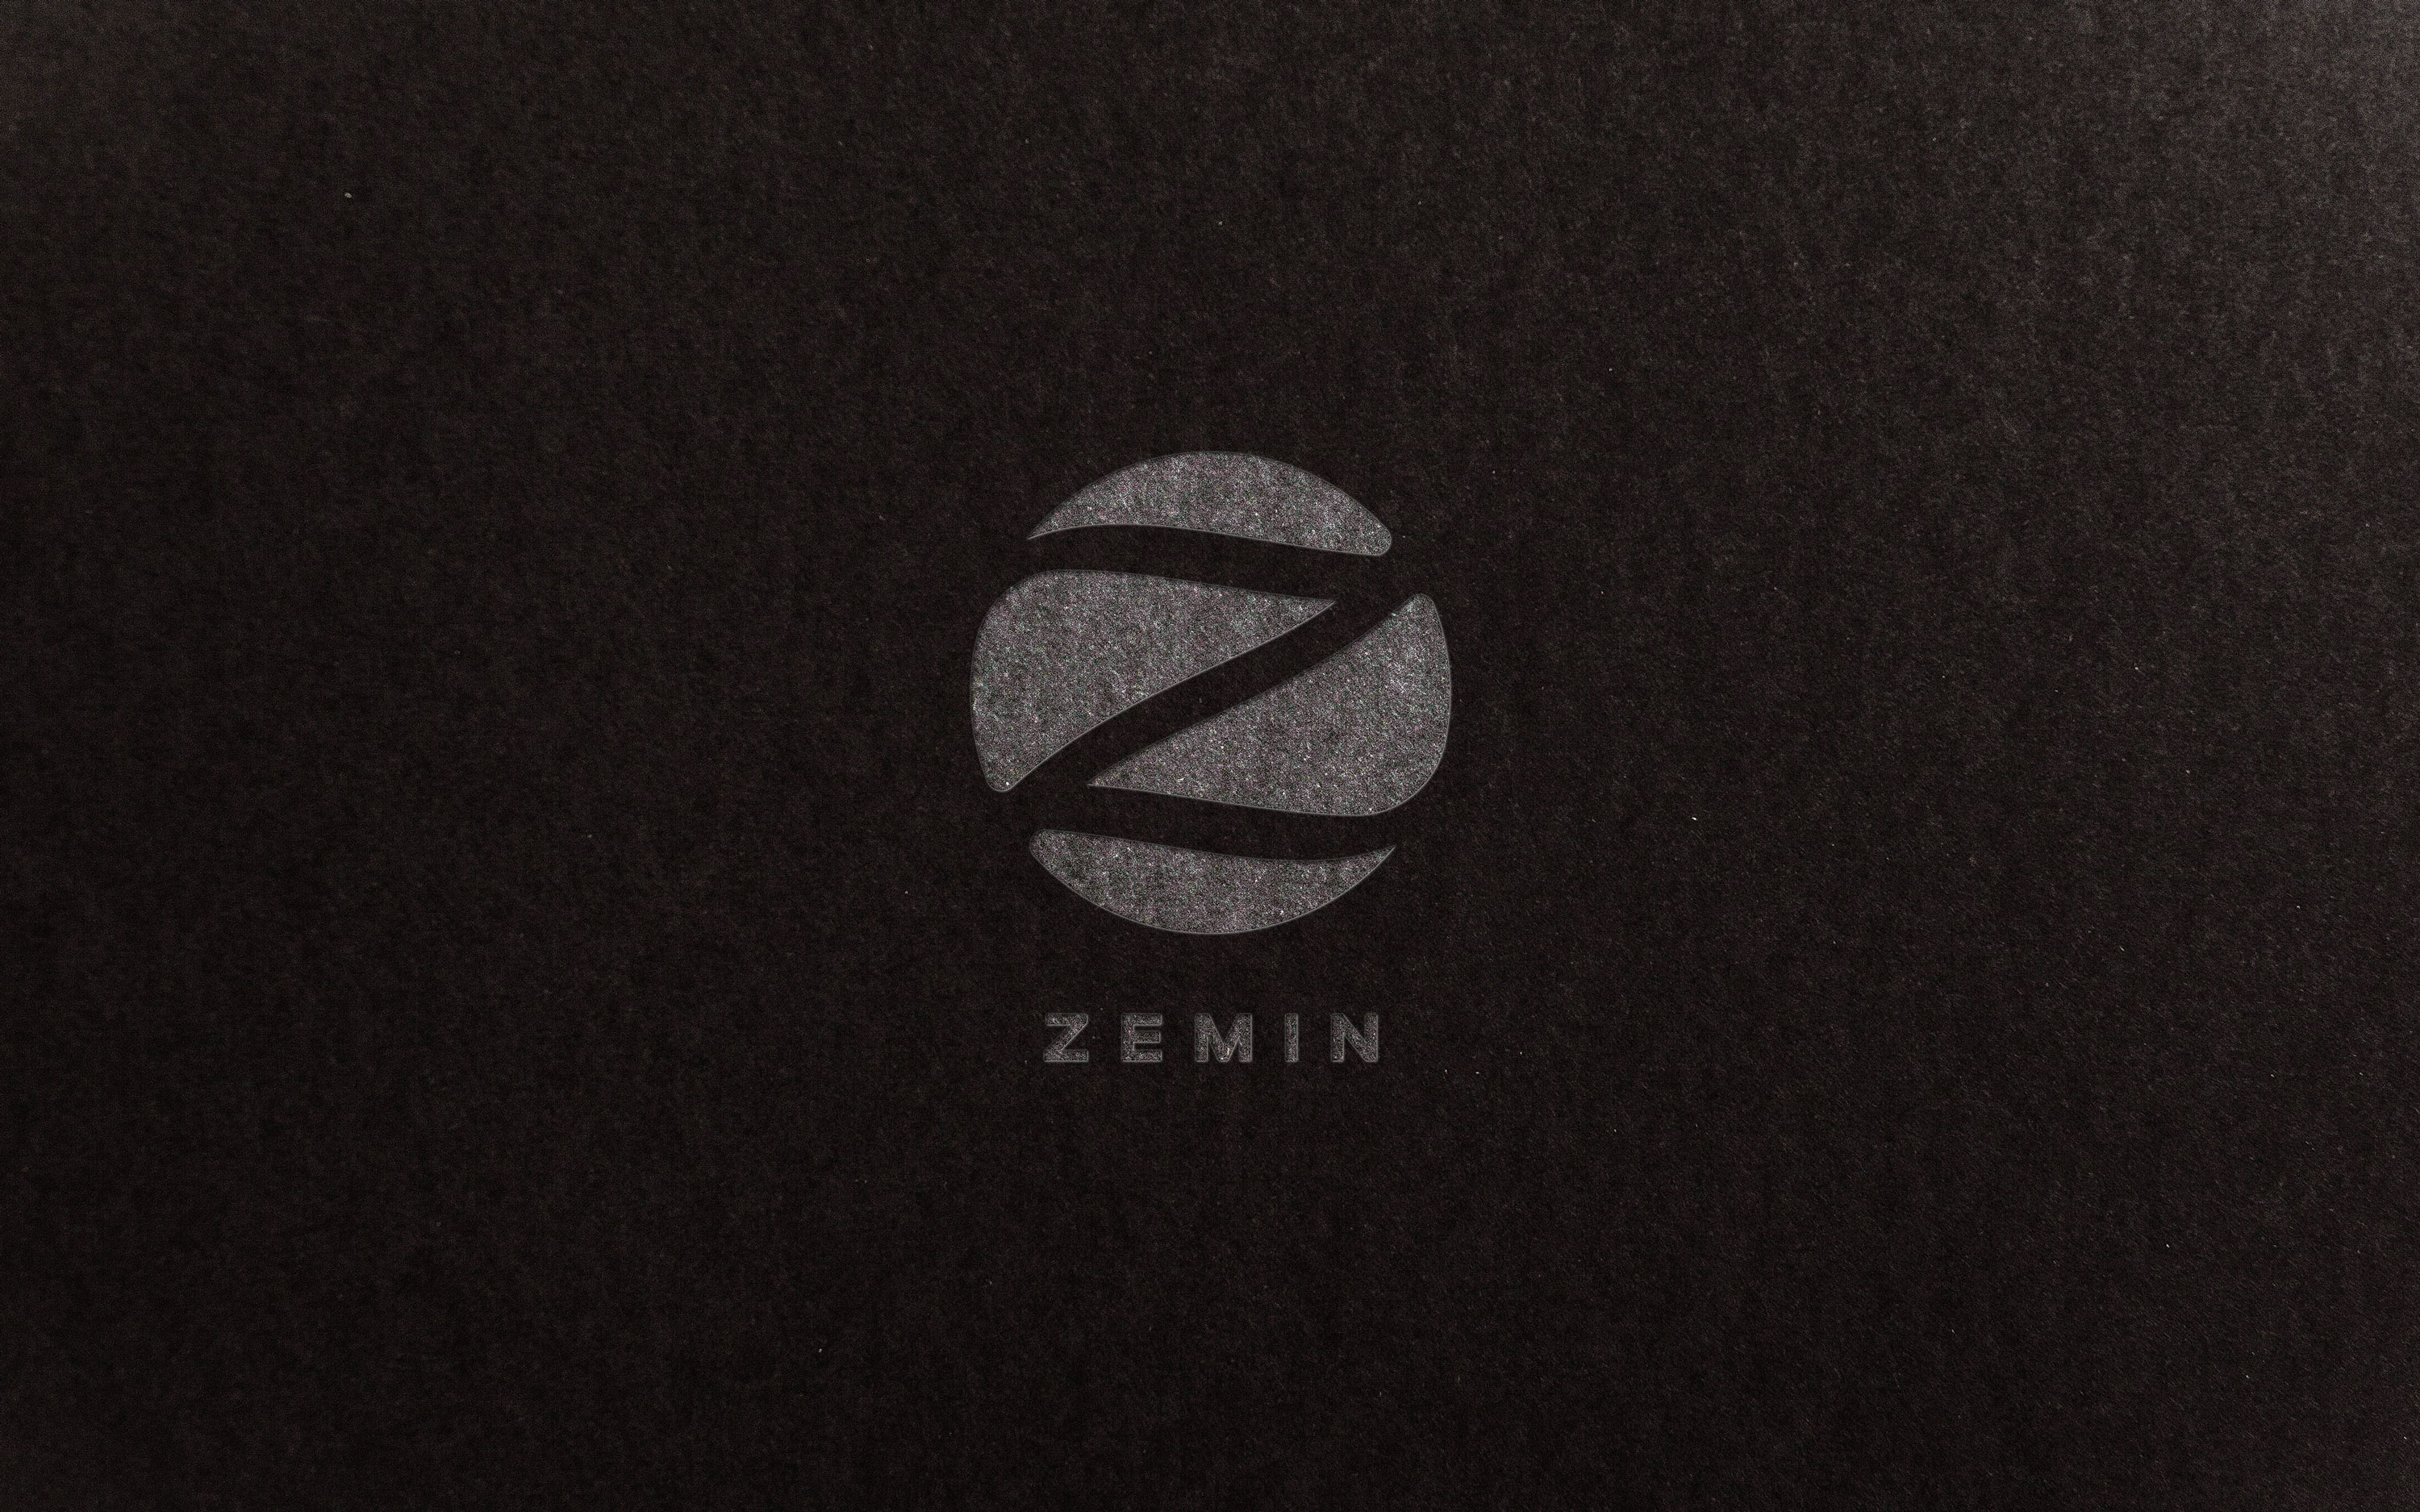 Zemin. Logo for a men's fashion company